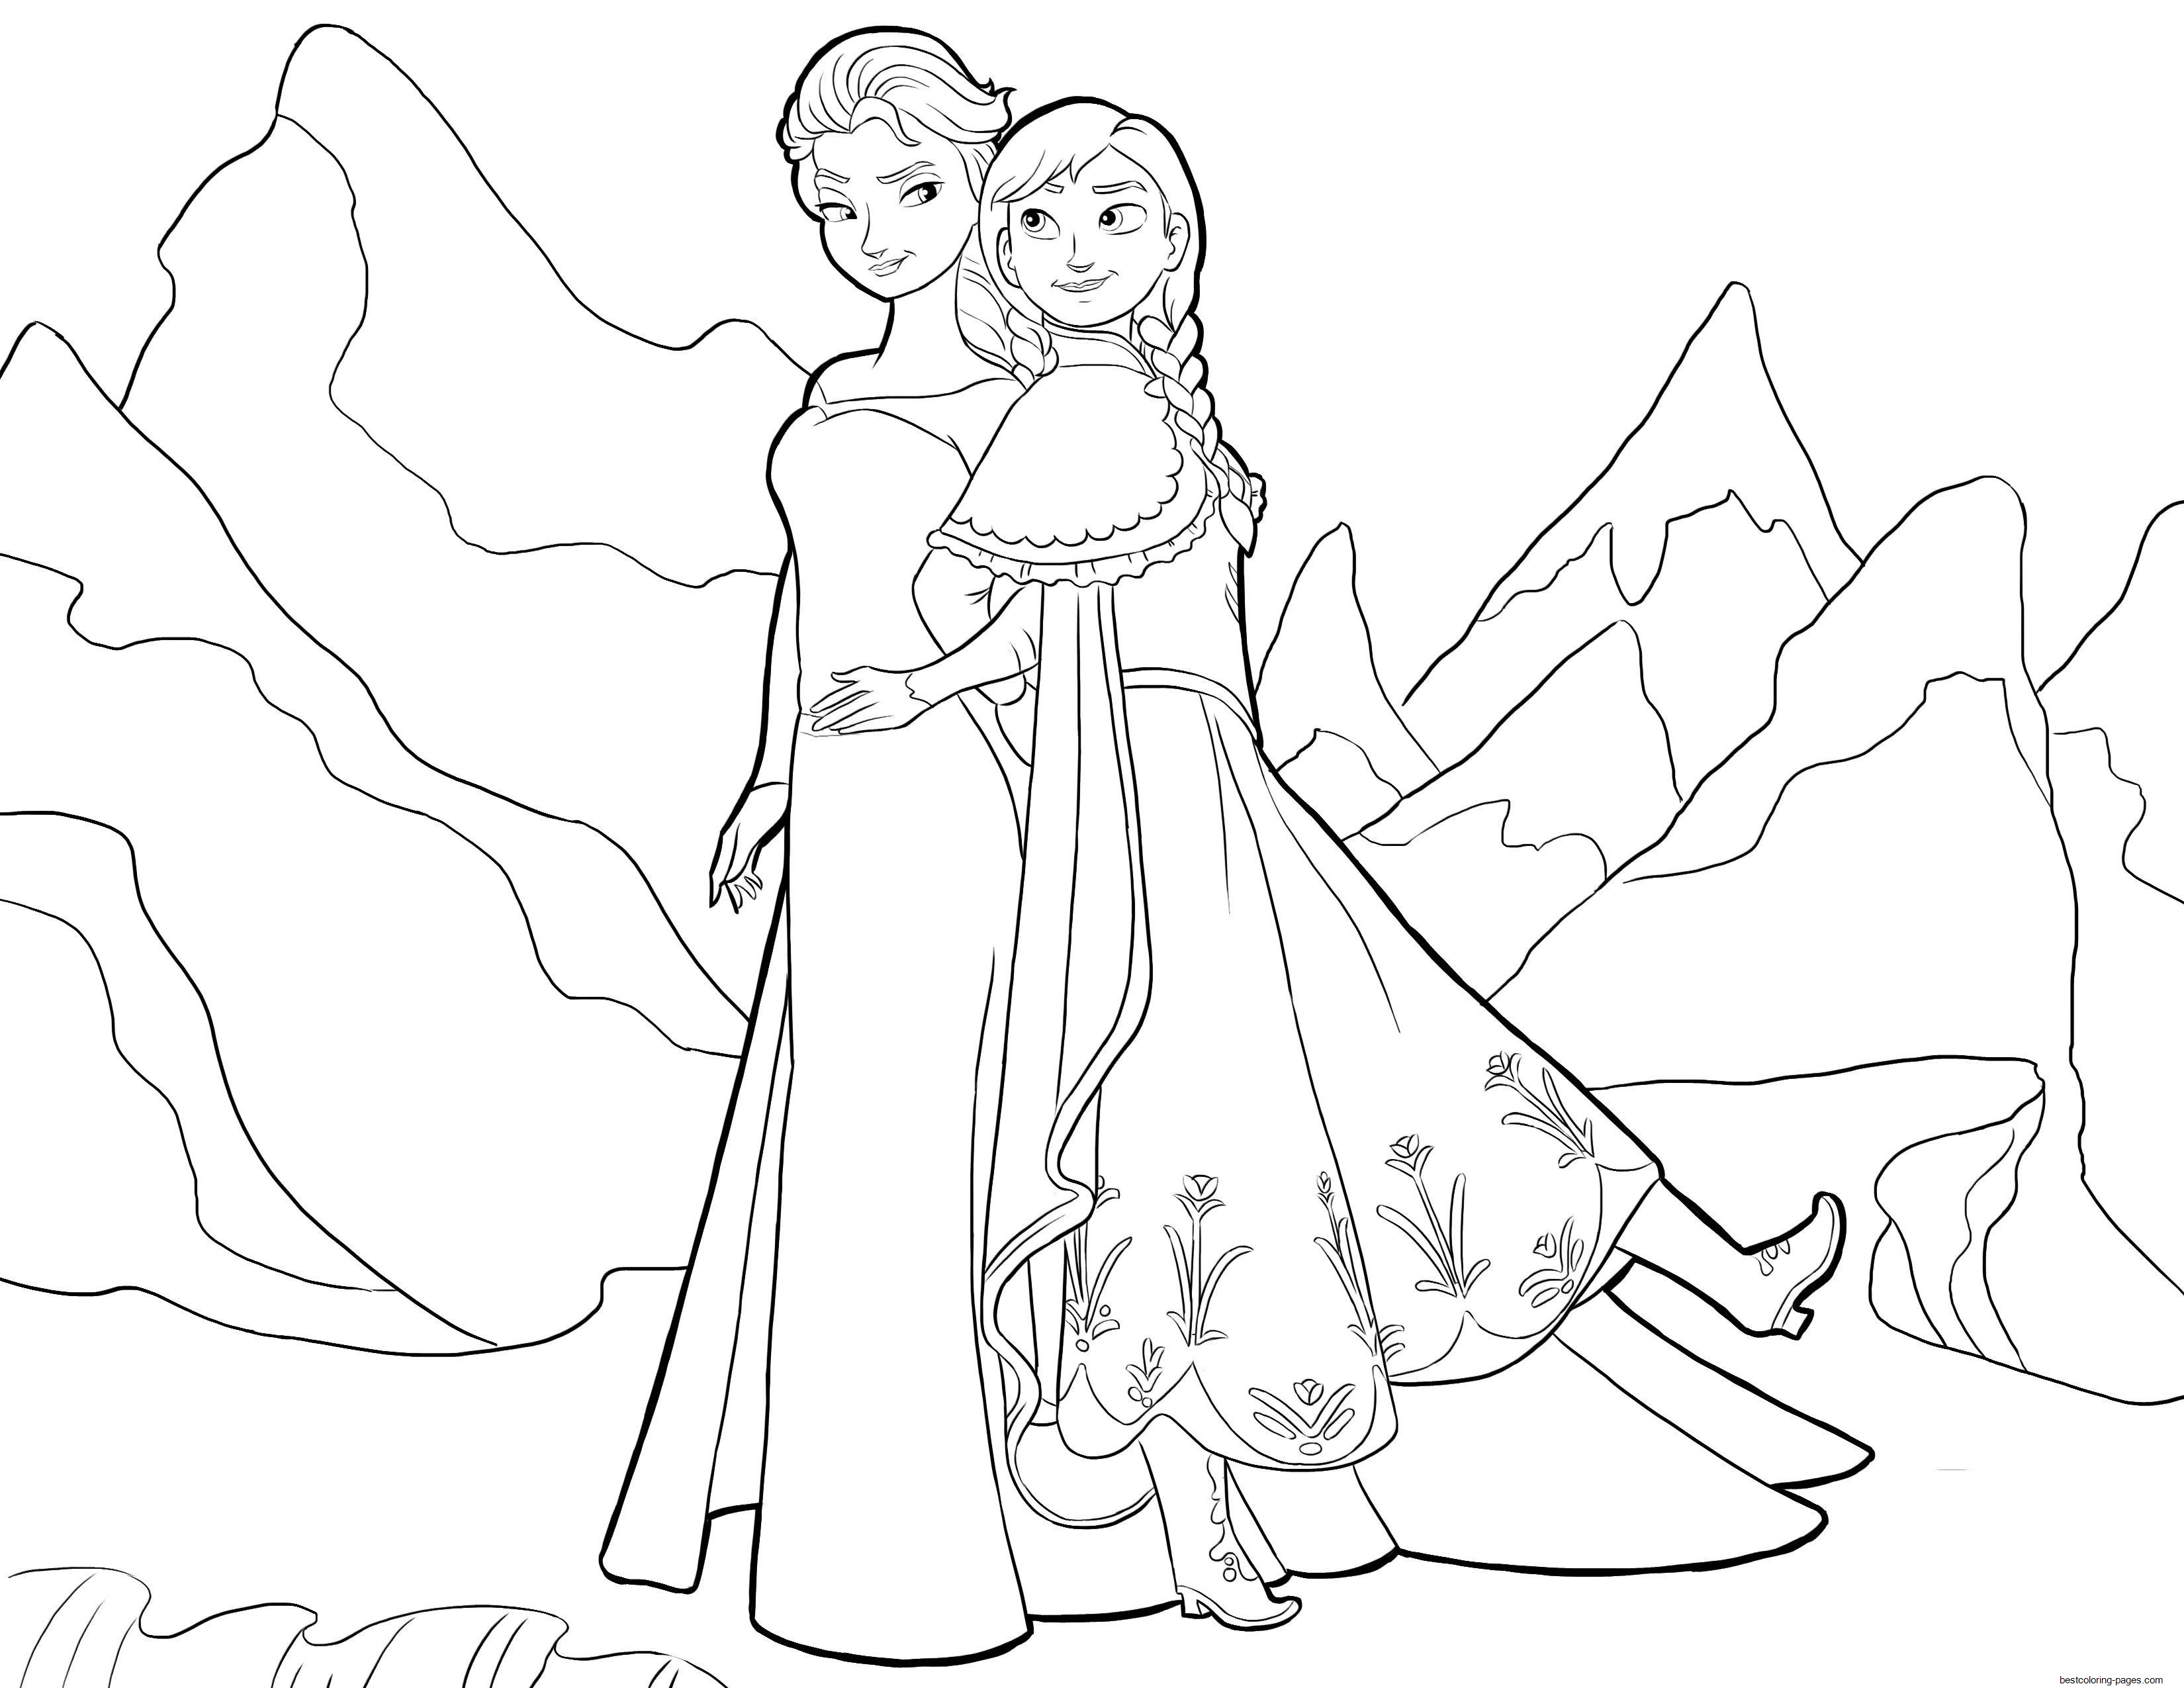 coloring sheets elsa and anna elsa and anna frozen disney coloring pages printable for elsa anna coloring and sheets